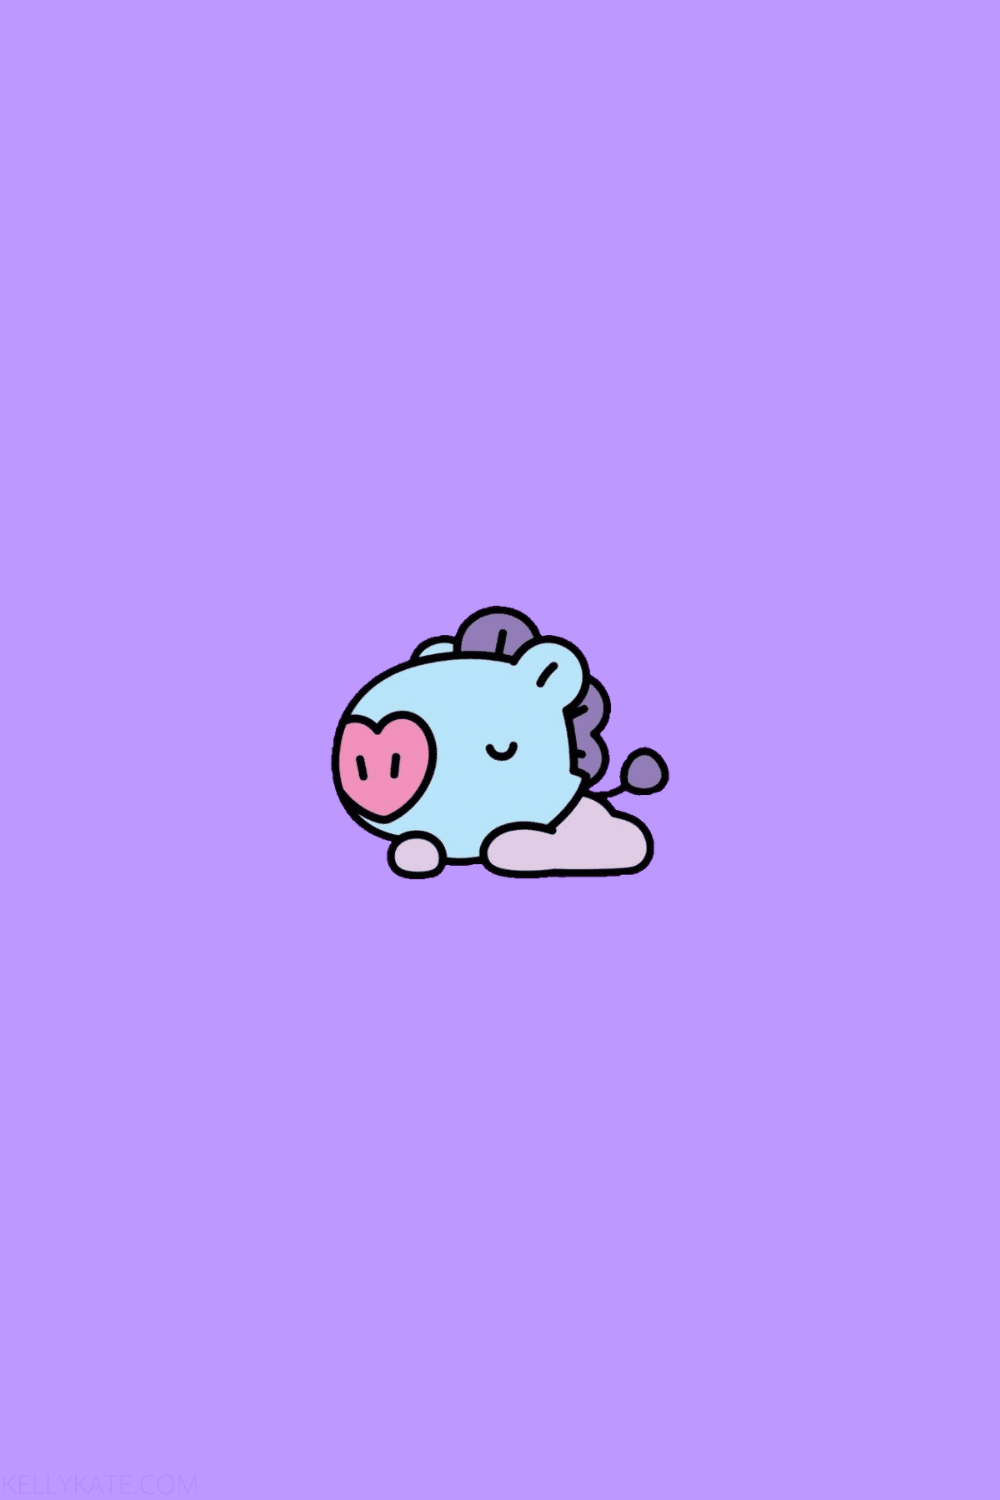 #bt21 #mang #wallpaperbt21